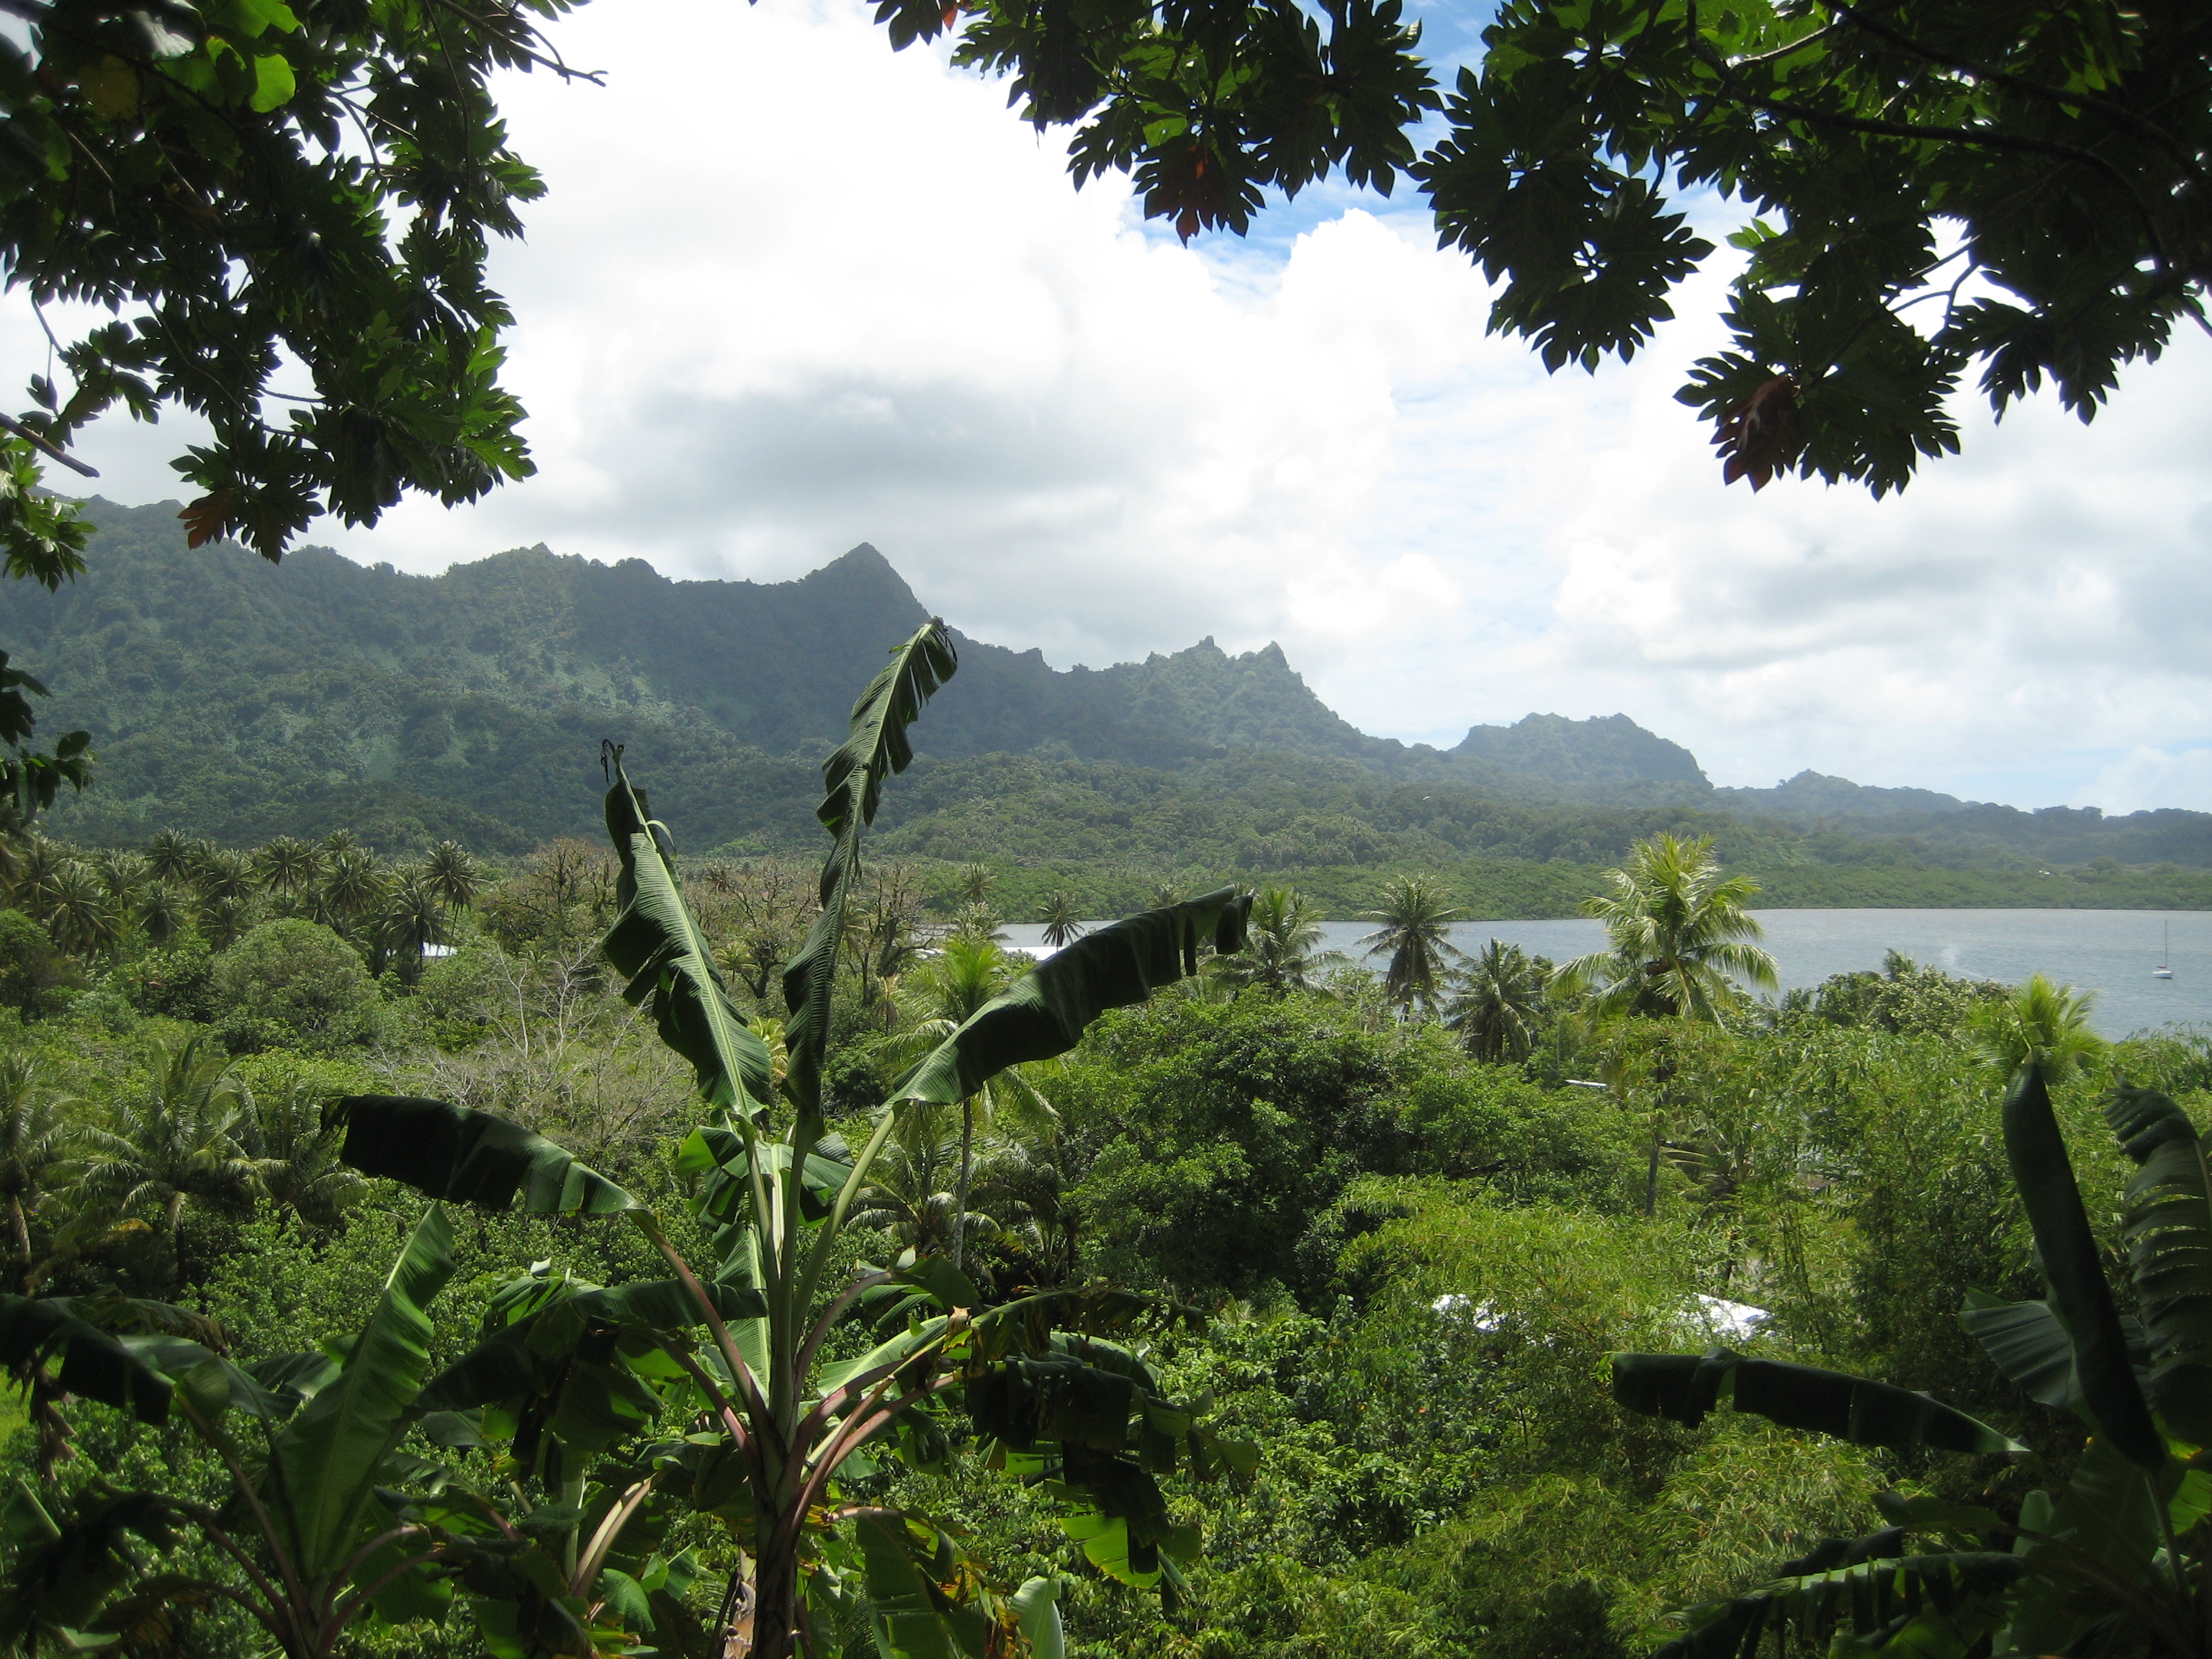 The Sleeping Lady of Kosrae (courtesy of cbarros)